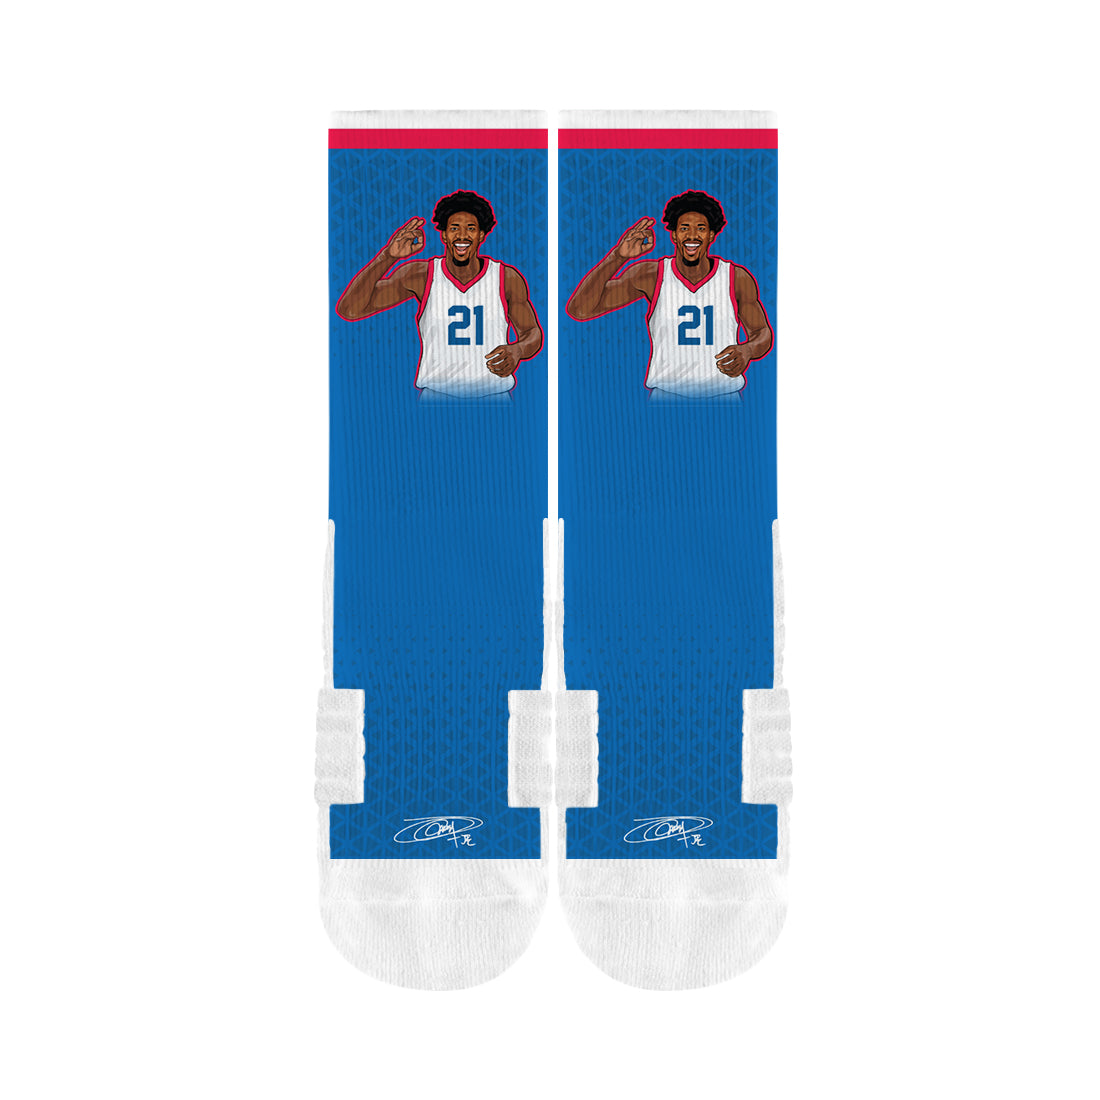 Joel Embiid For Three Blue Socks